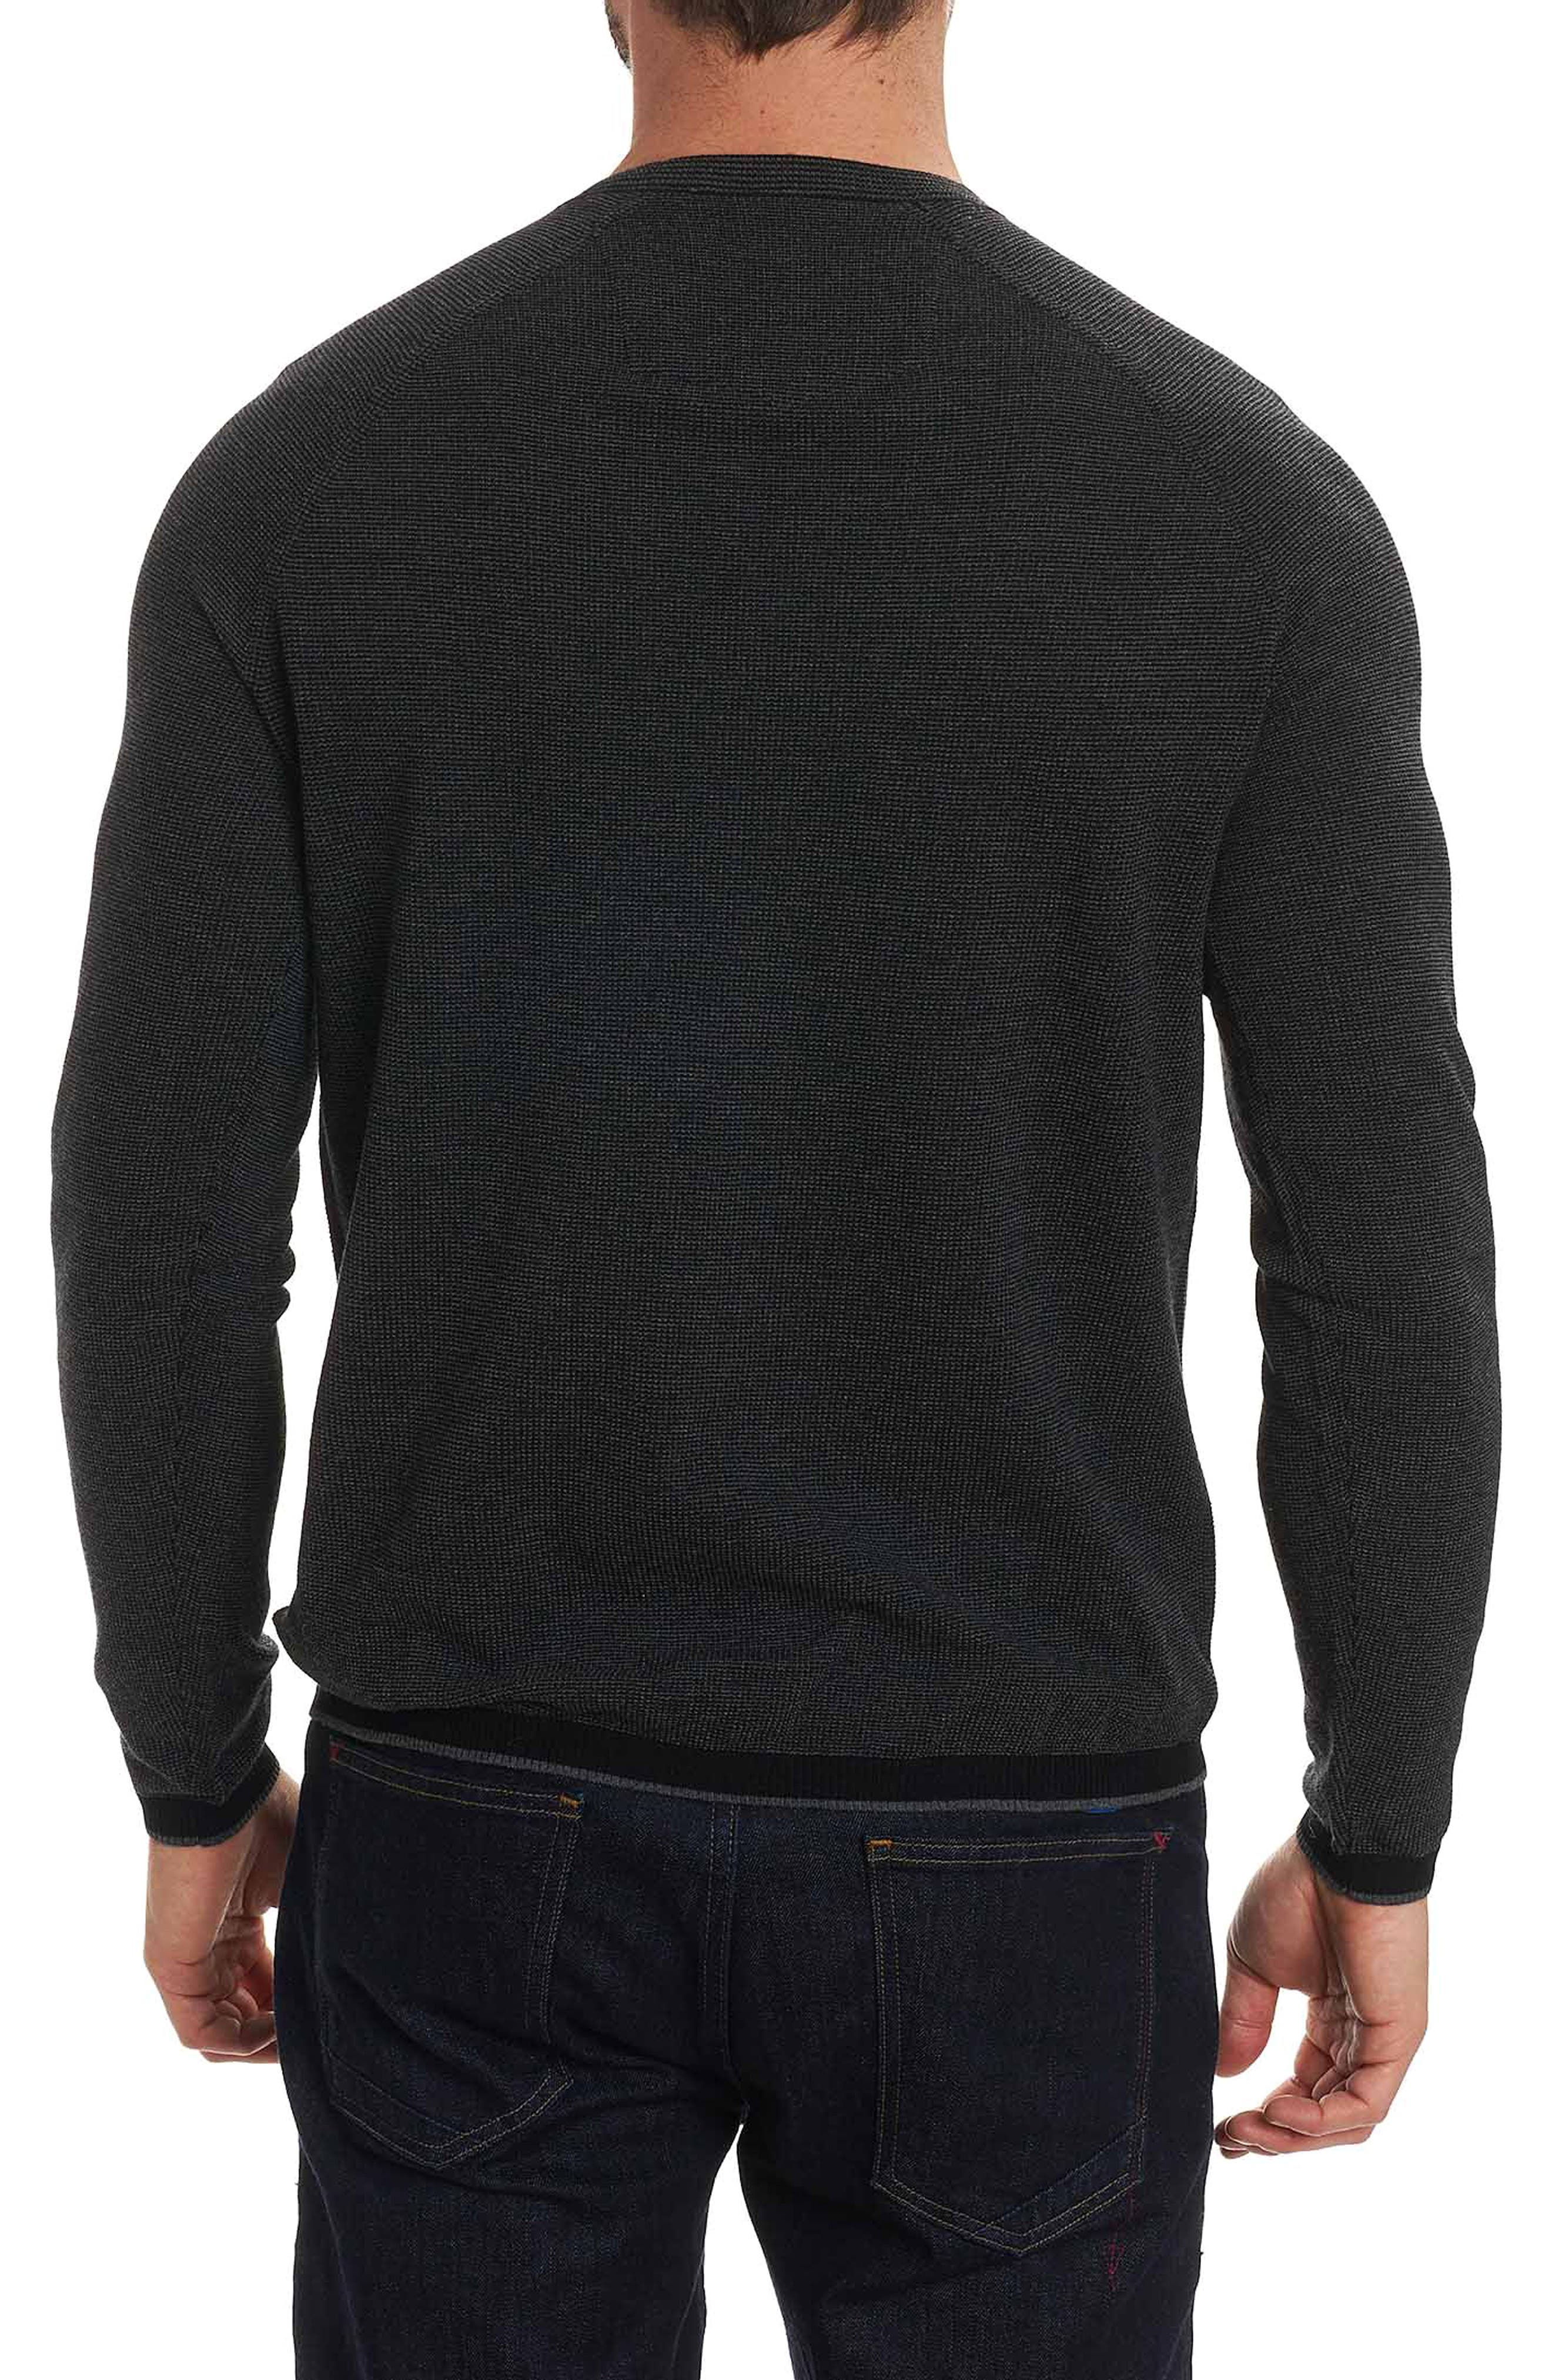 Ray Brook Wool Blend Sweater,                             Alternate thumbnail 2, color,                             001